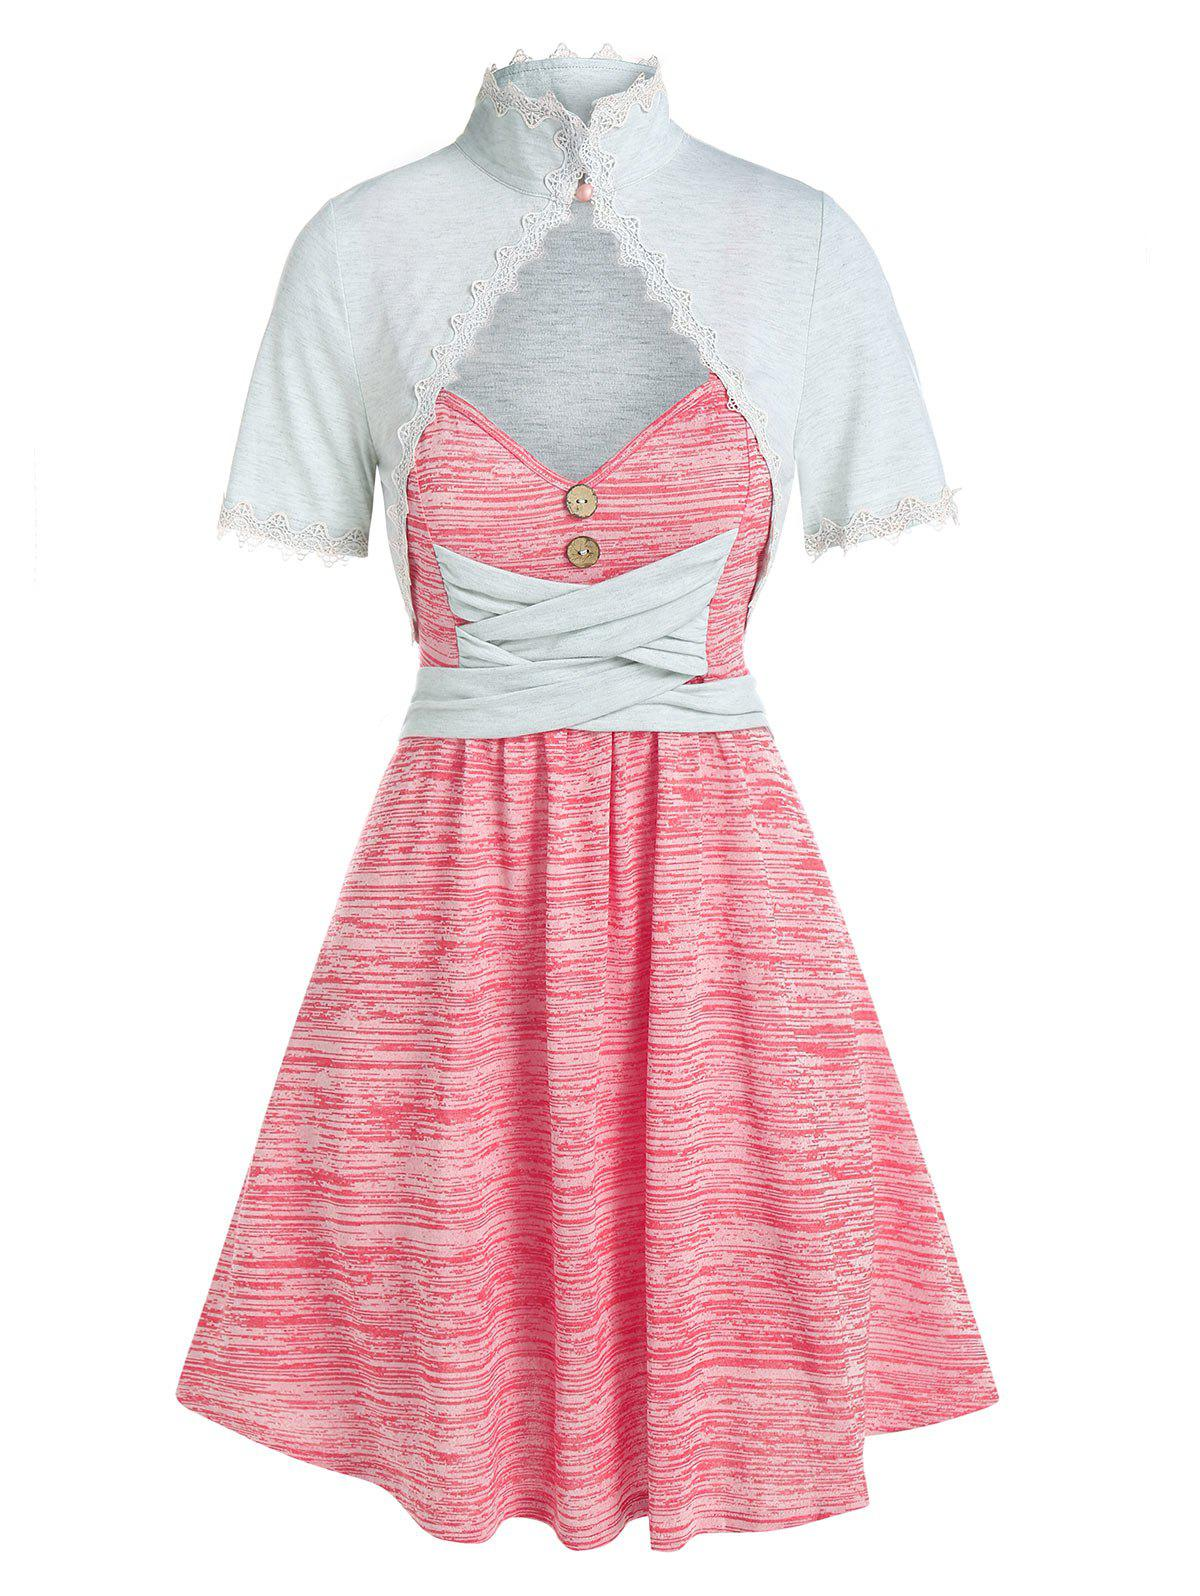 Best Sleeveless Space Dye Print Dress and Lace Trim Top